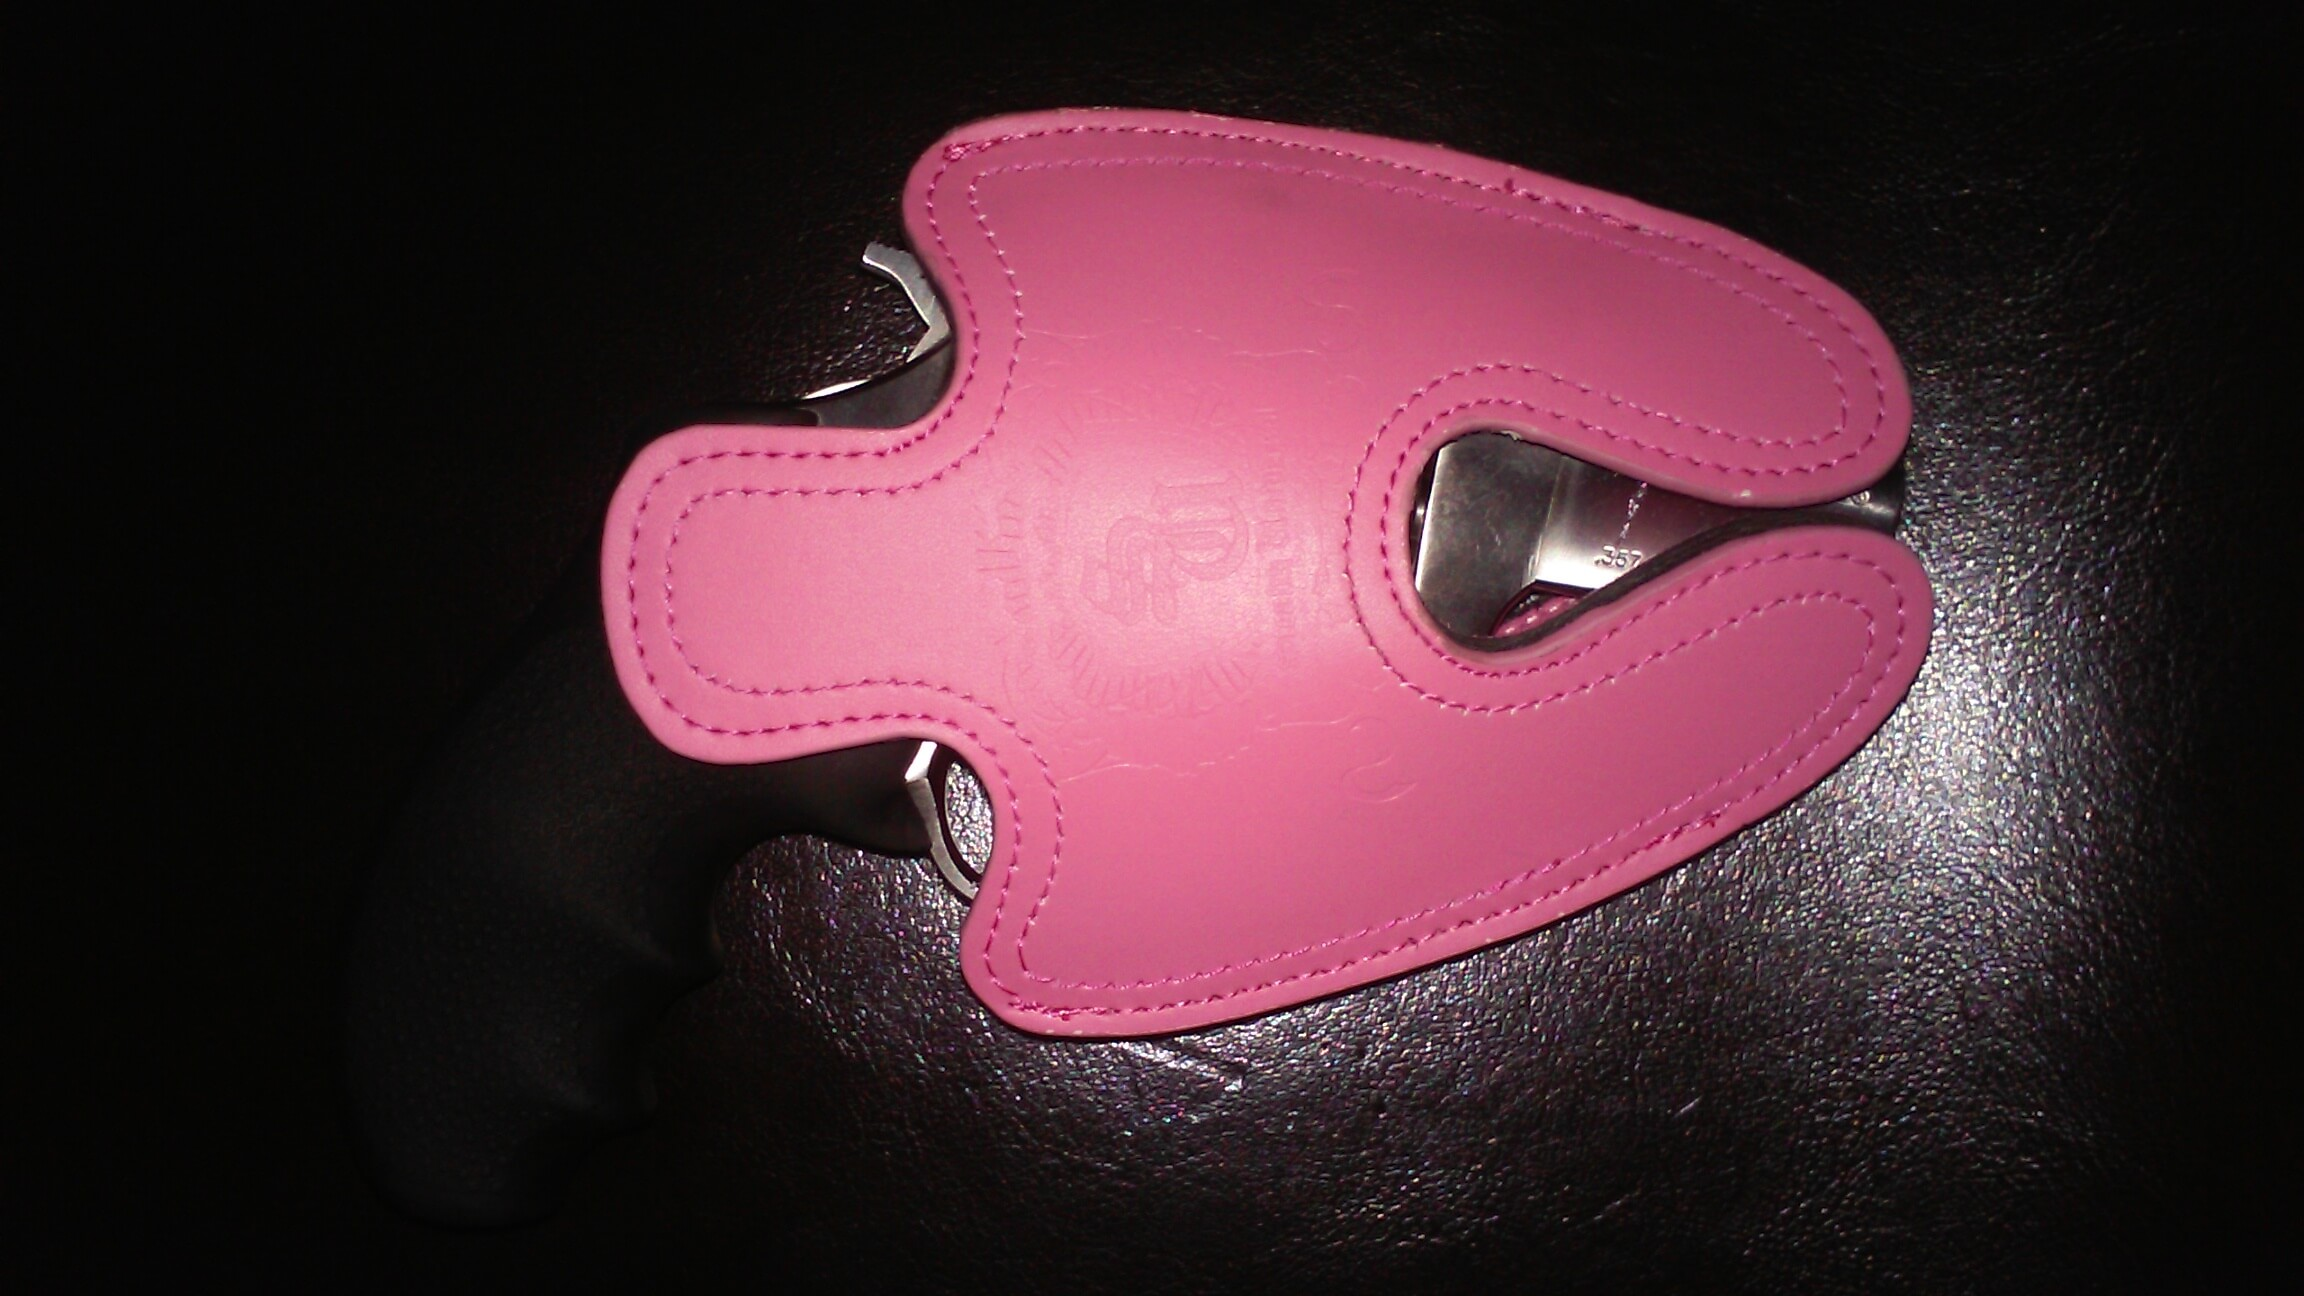 Ruger SP101 Pink Leather Holster Subcompact